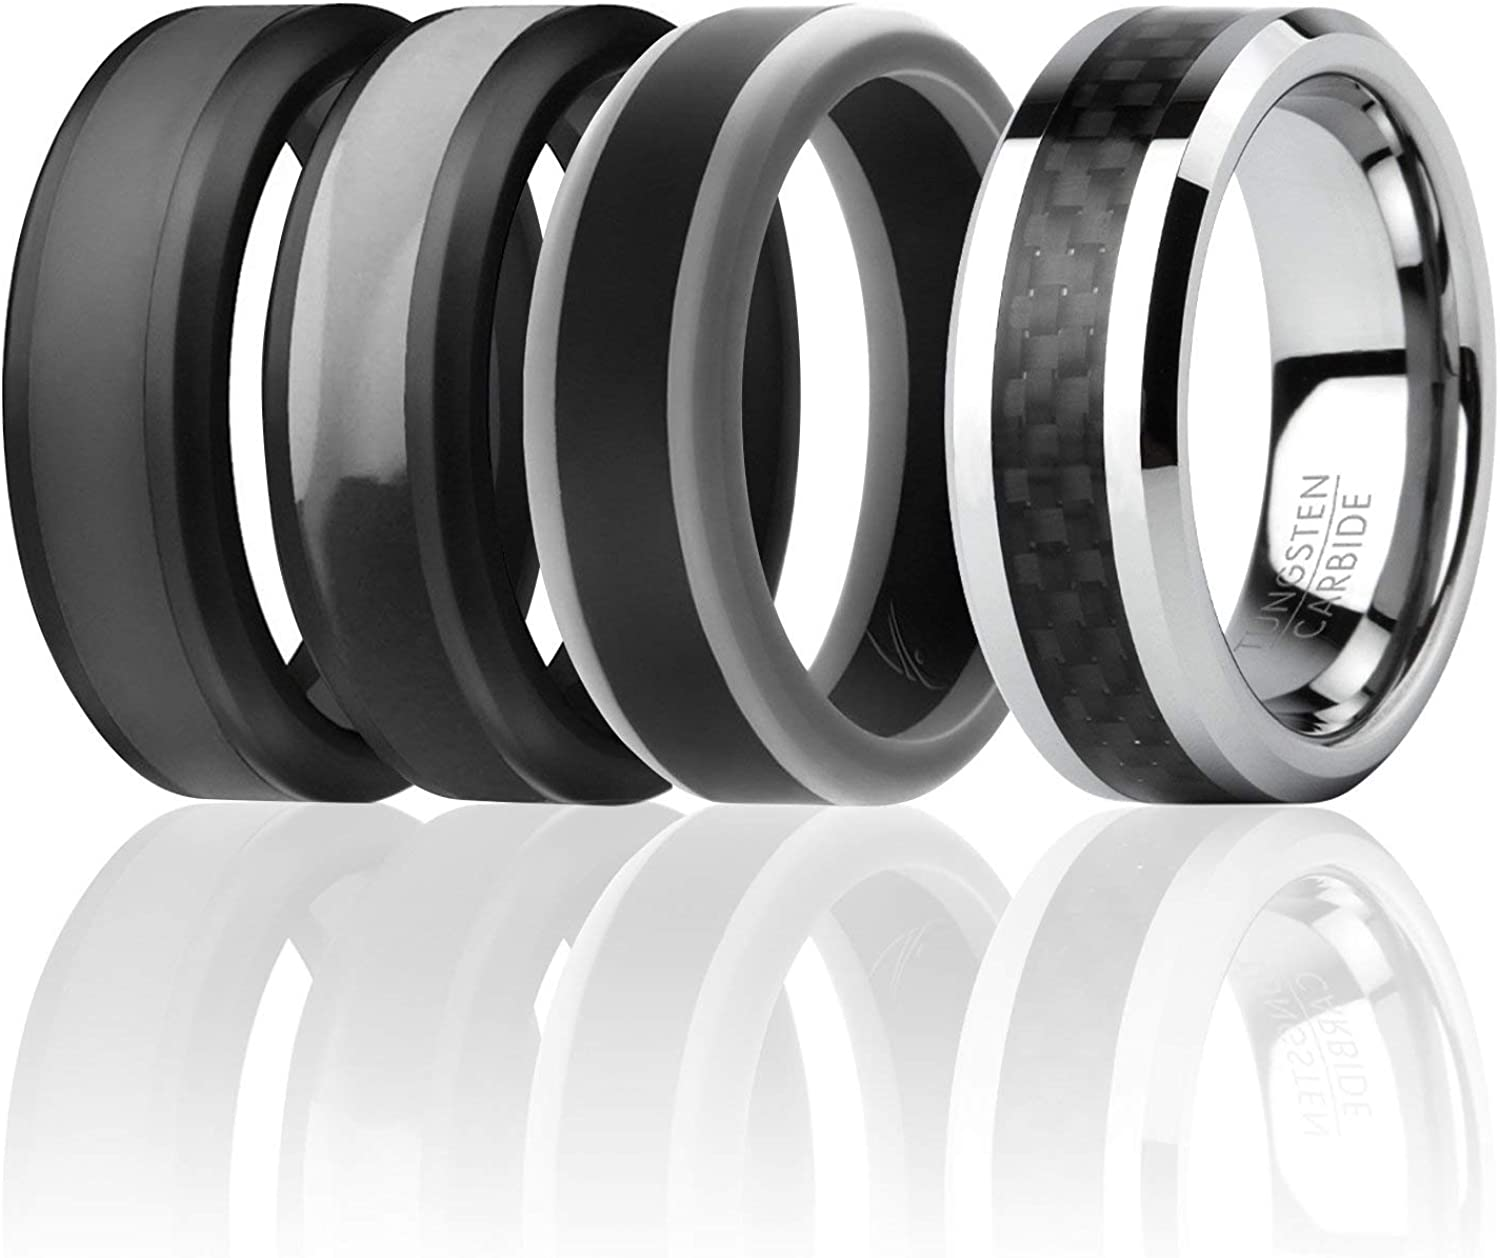 4 Pack 3 Silicone /& 1 Tungsten Carbide Wedding Rings for Men Mens Silicone Rings for Work//Sport//Hiking Carbon Fiber Style Tungsten Carbide Band for Special Events ROQ